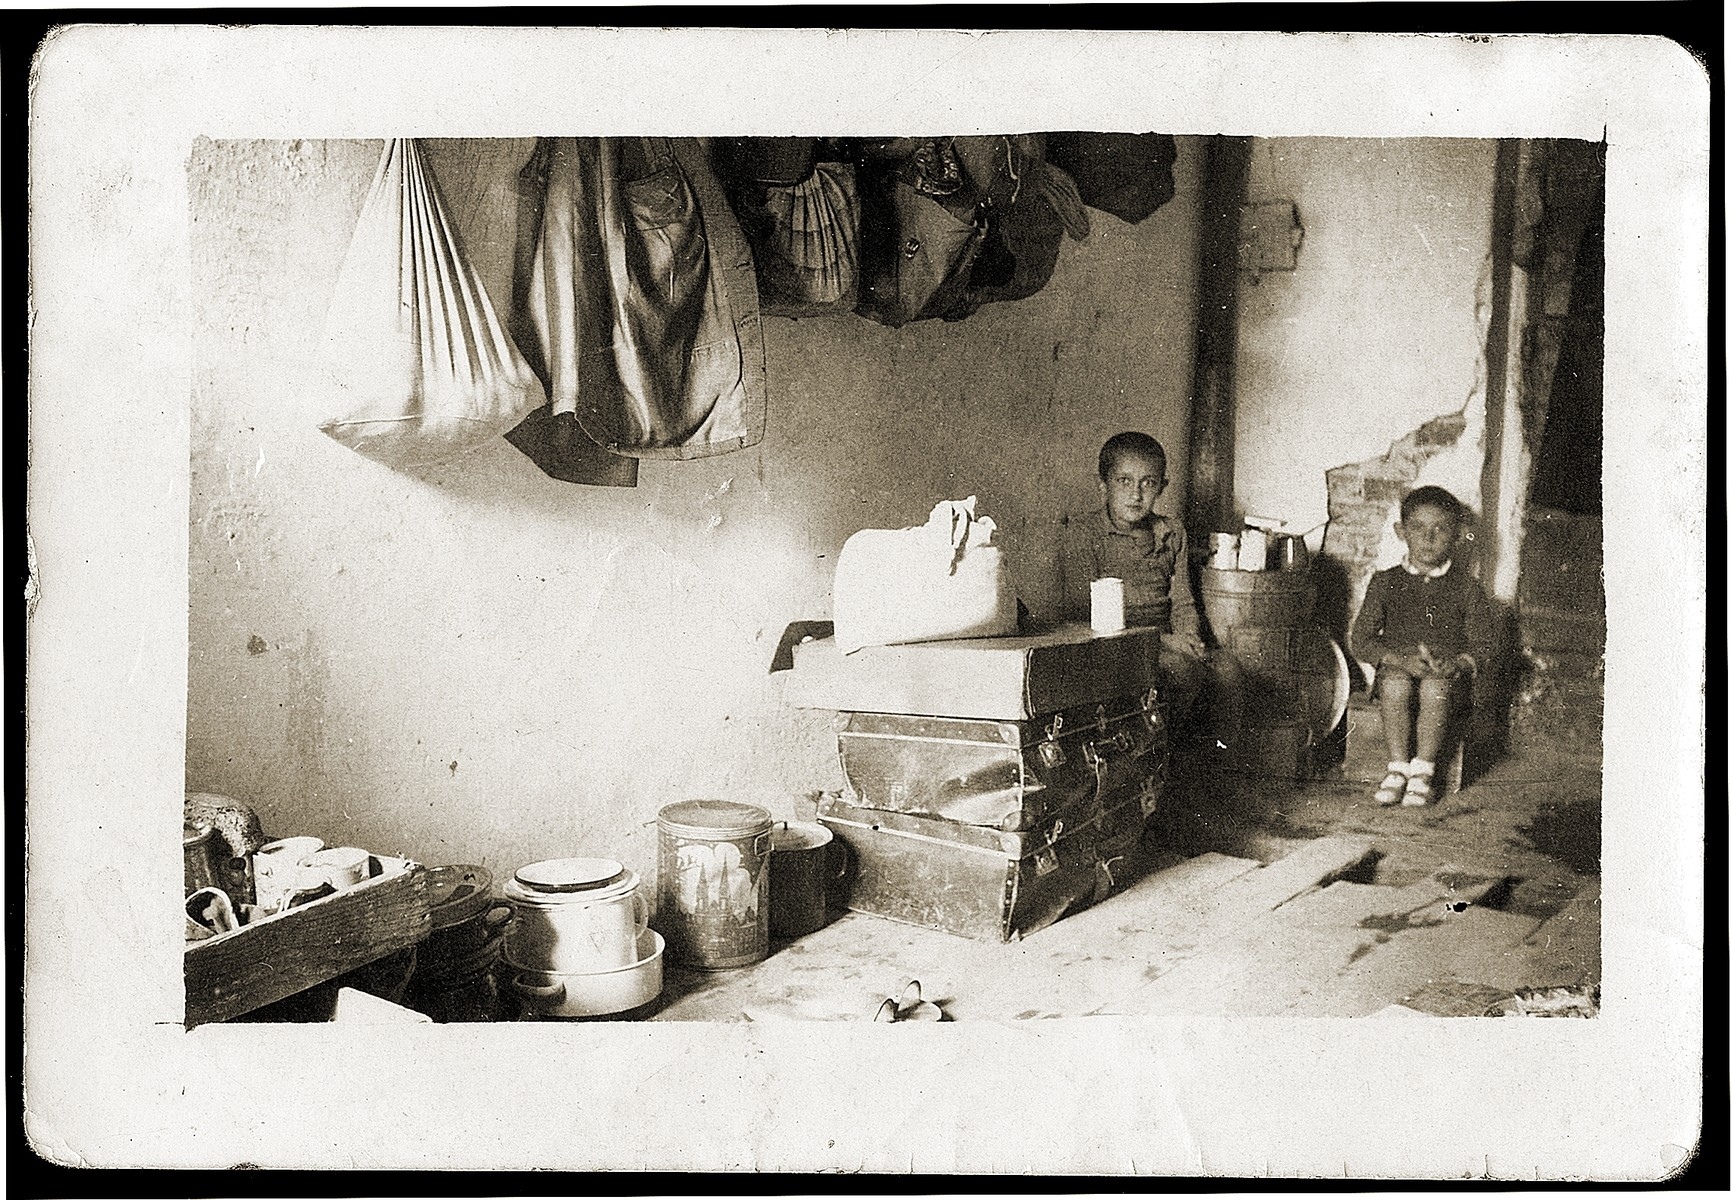 Two Jewish refugee children in their cell in the Pristina prison, where they were detained with their families by the Italians for eight months.  Pictured are Gavra Mandil (right) and Michael Konforti (left).